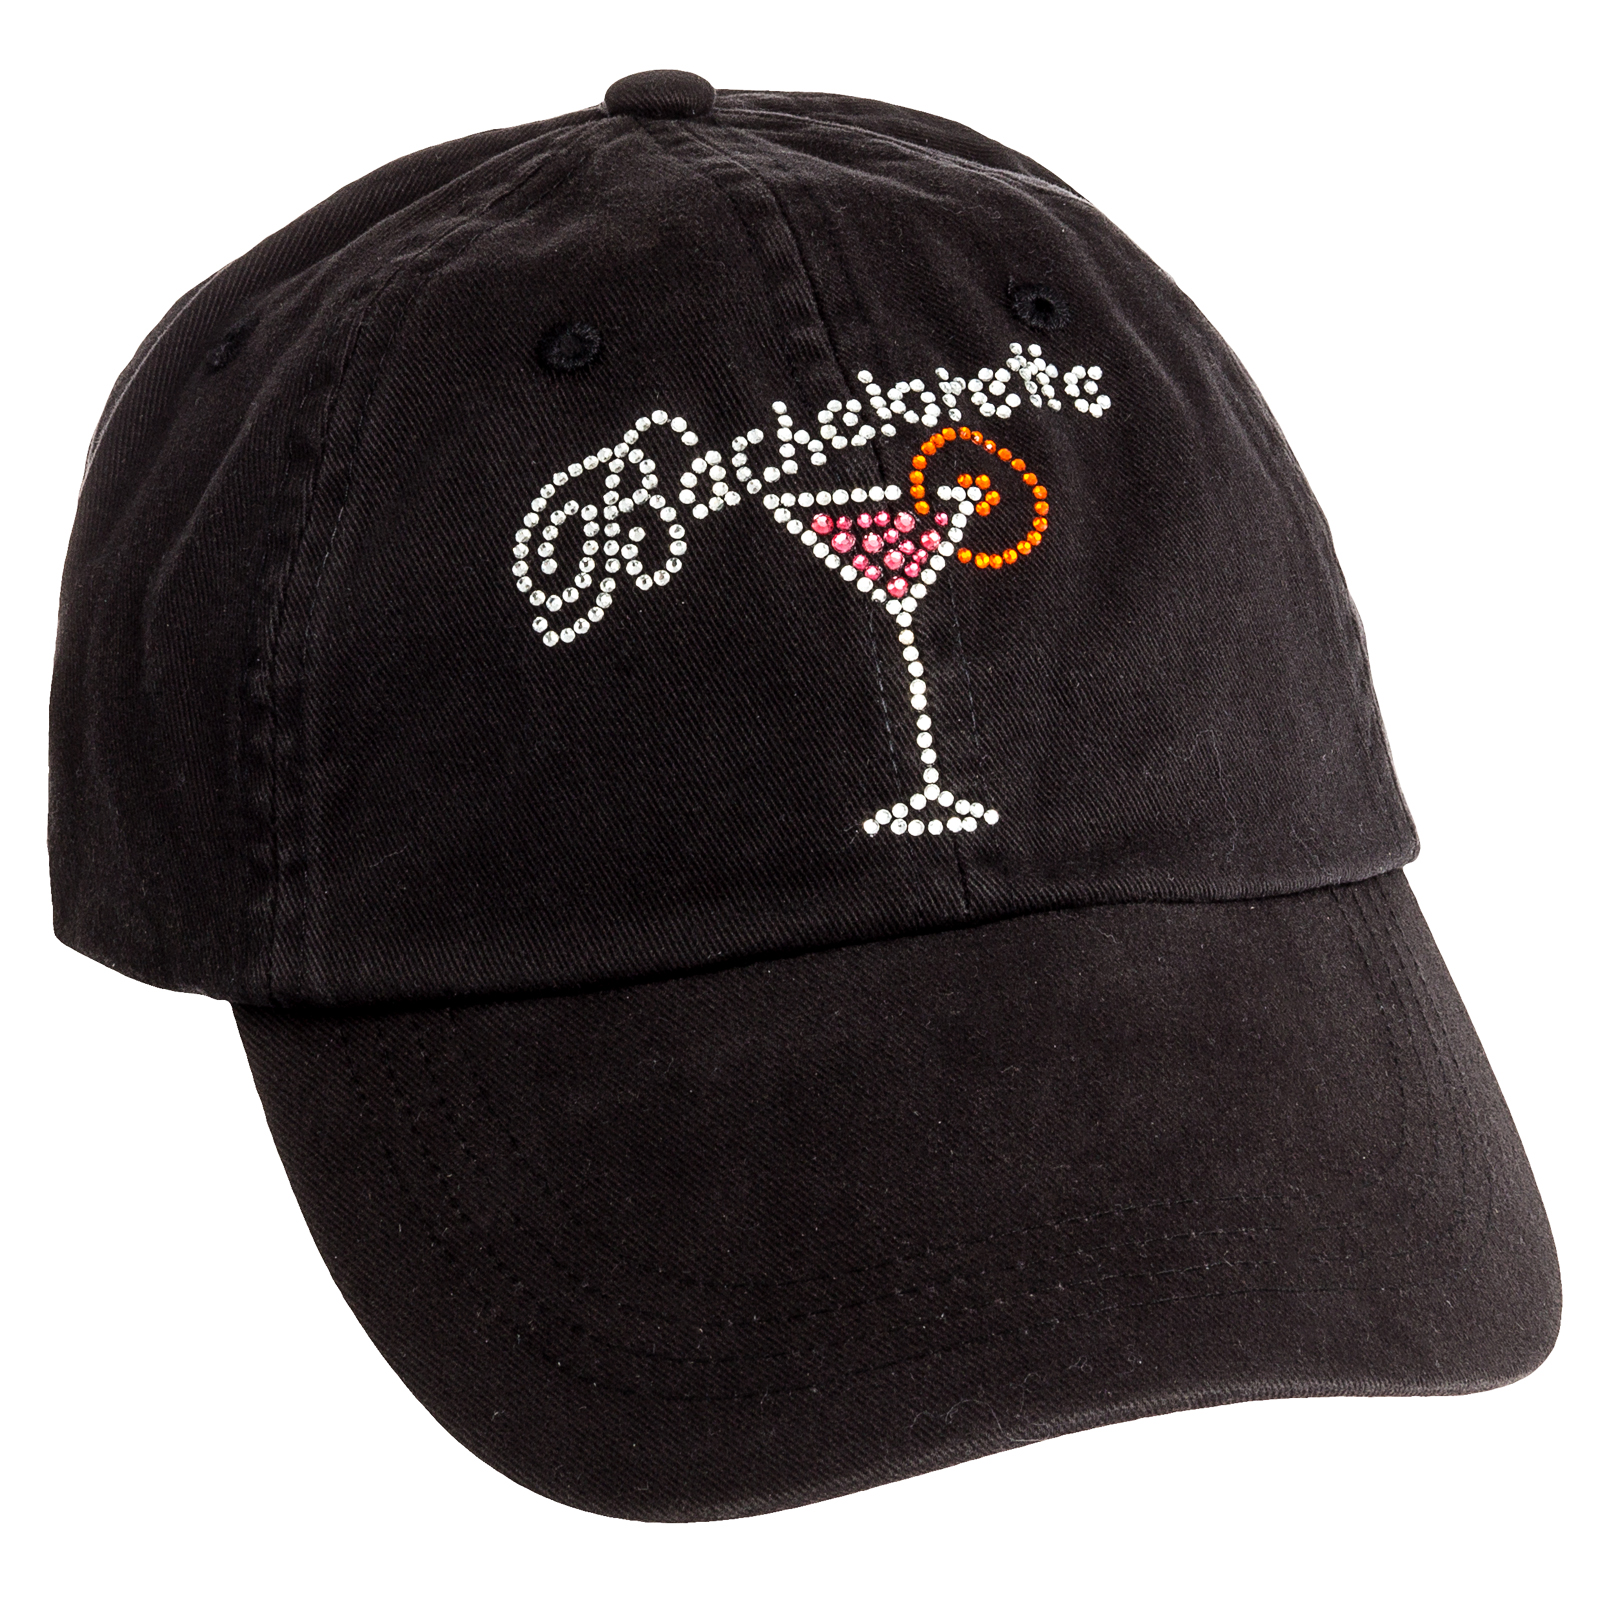 womens black adjustable baseball cap rhinestone